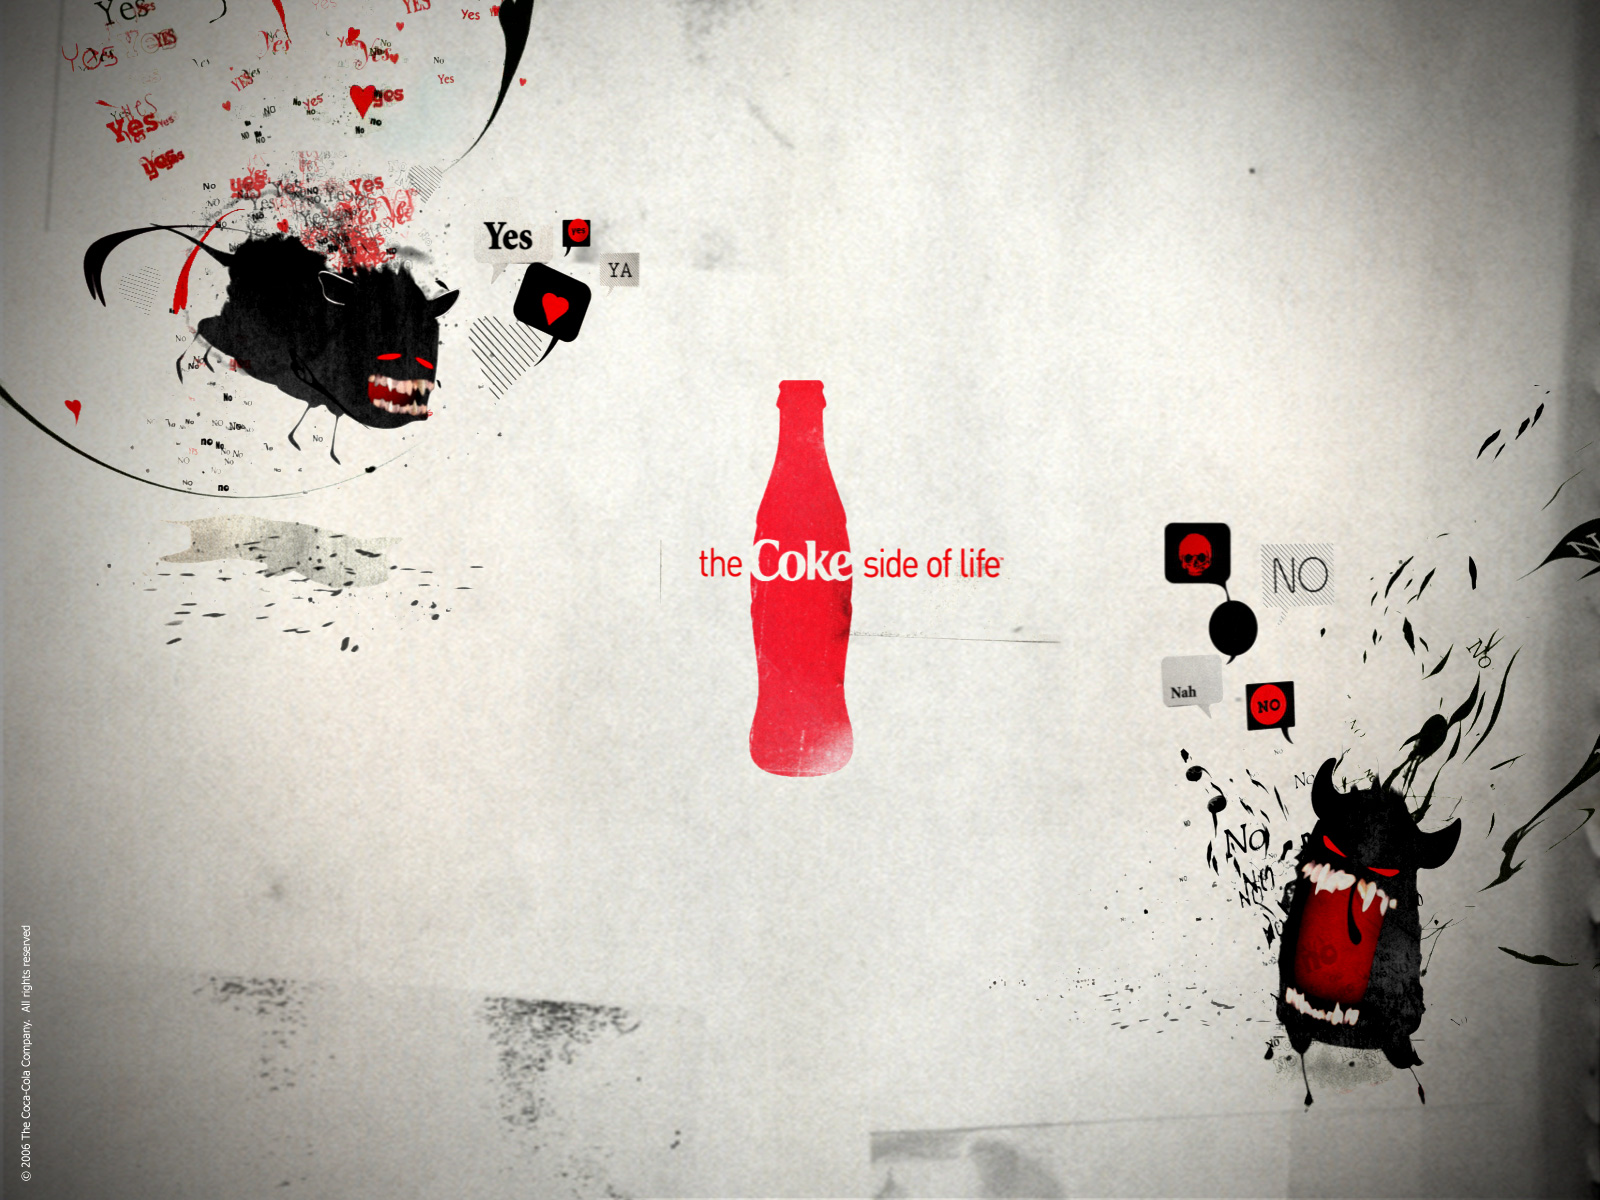 http://3.bp.blogspot.com/-yShPsXmI0Fo/Tne70kPFGQI/AAAAAAAABLI/6BxLiIEz6Jc/s1600/coca_cola_side_of_life_artwork_theme_Wallpapers_Vvallpaper.net.jpg